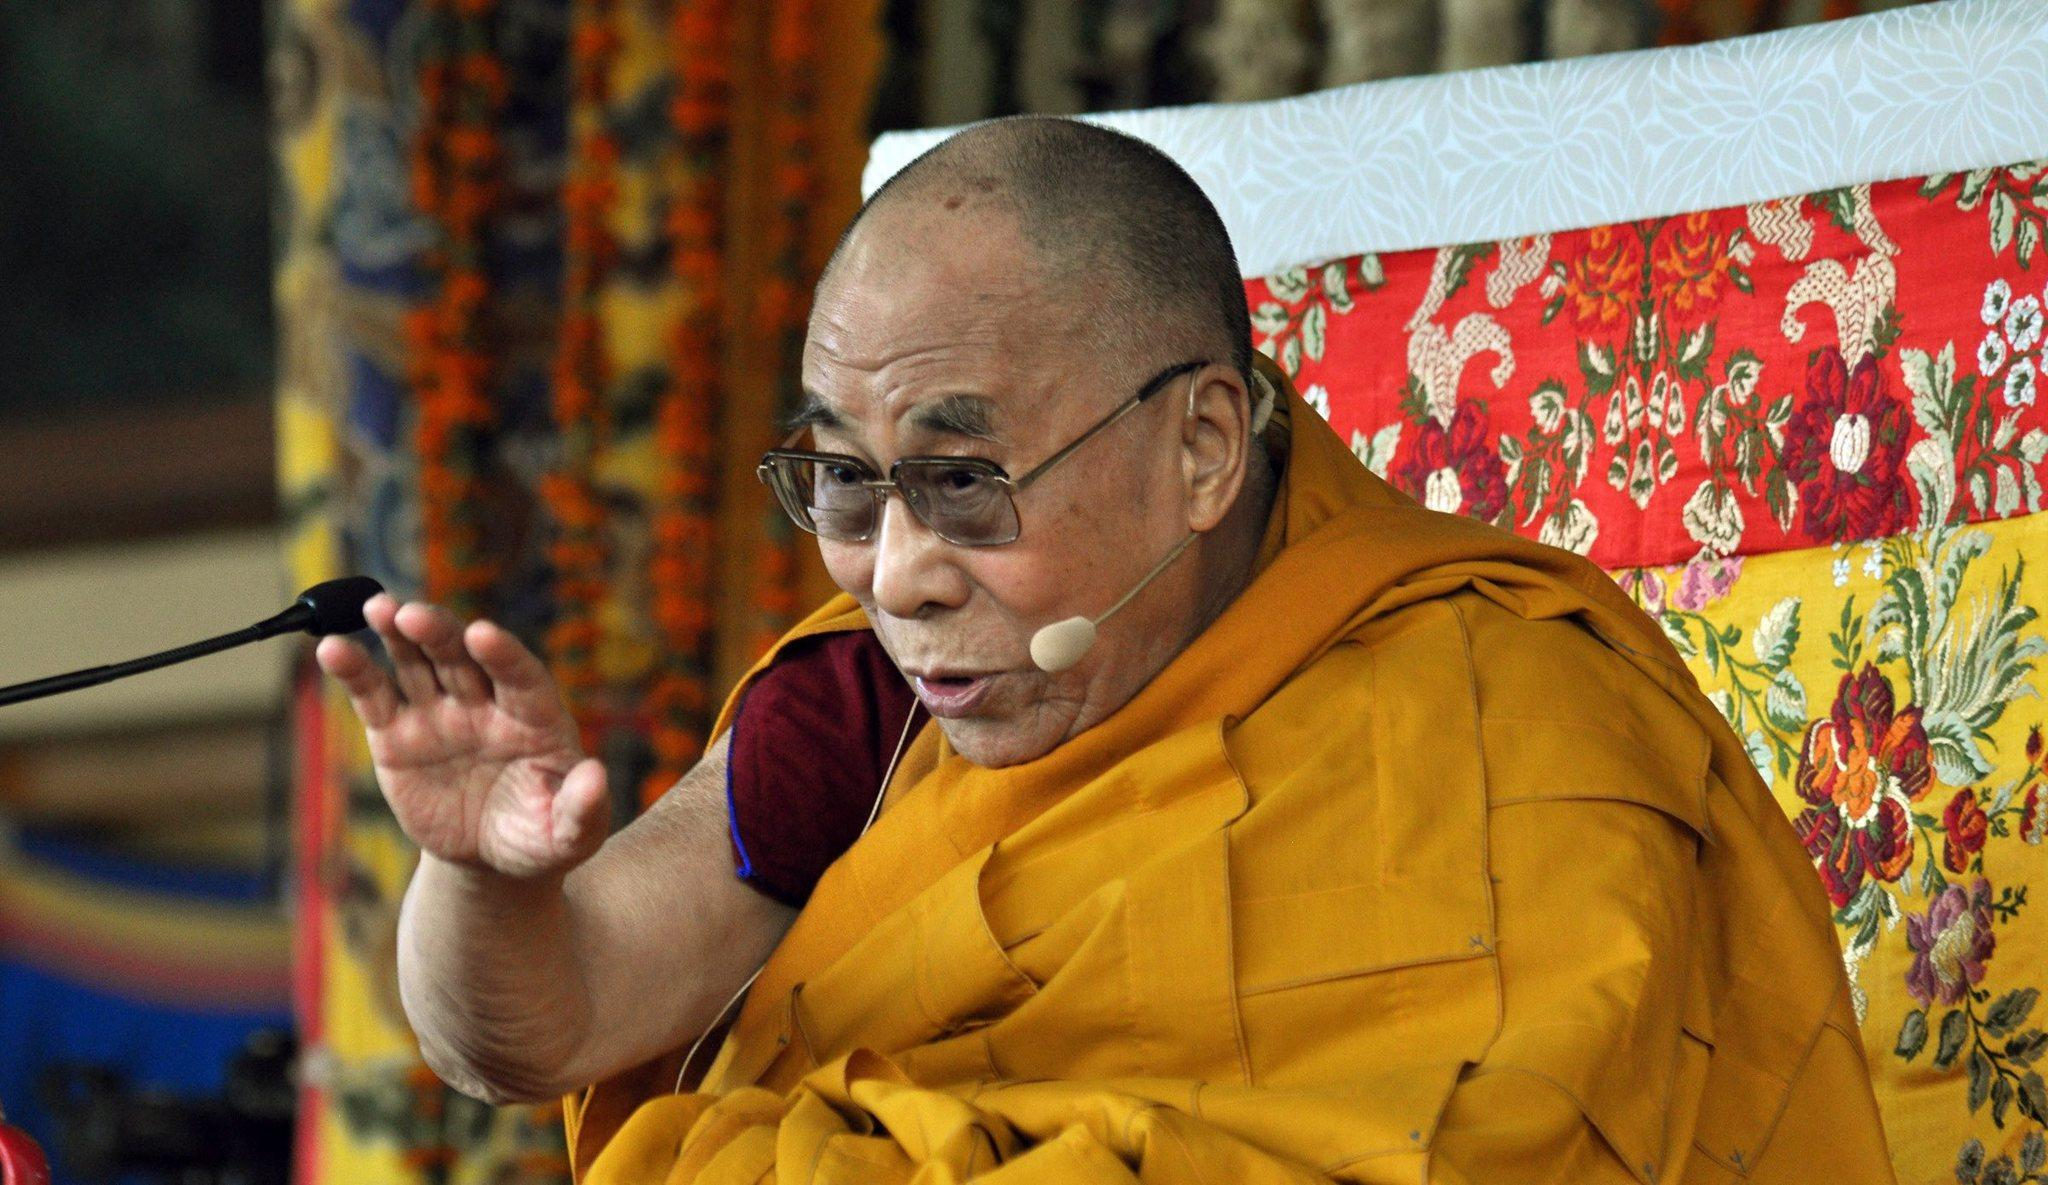 The Dalai Lama gestures as he speaks during a session of short teaching from the Jataka Tales at the main Tibetan Tsuglagkhang temple at McLeodGanj in India.